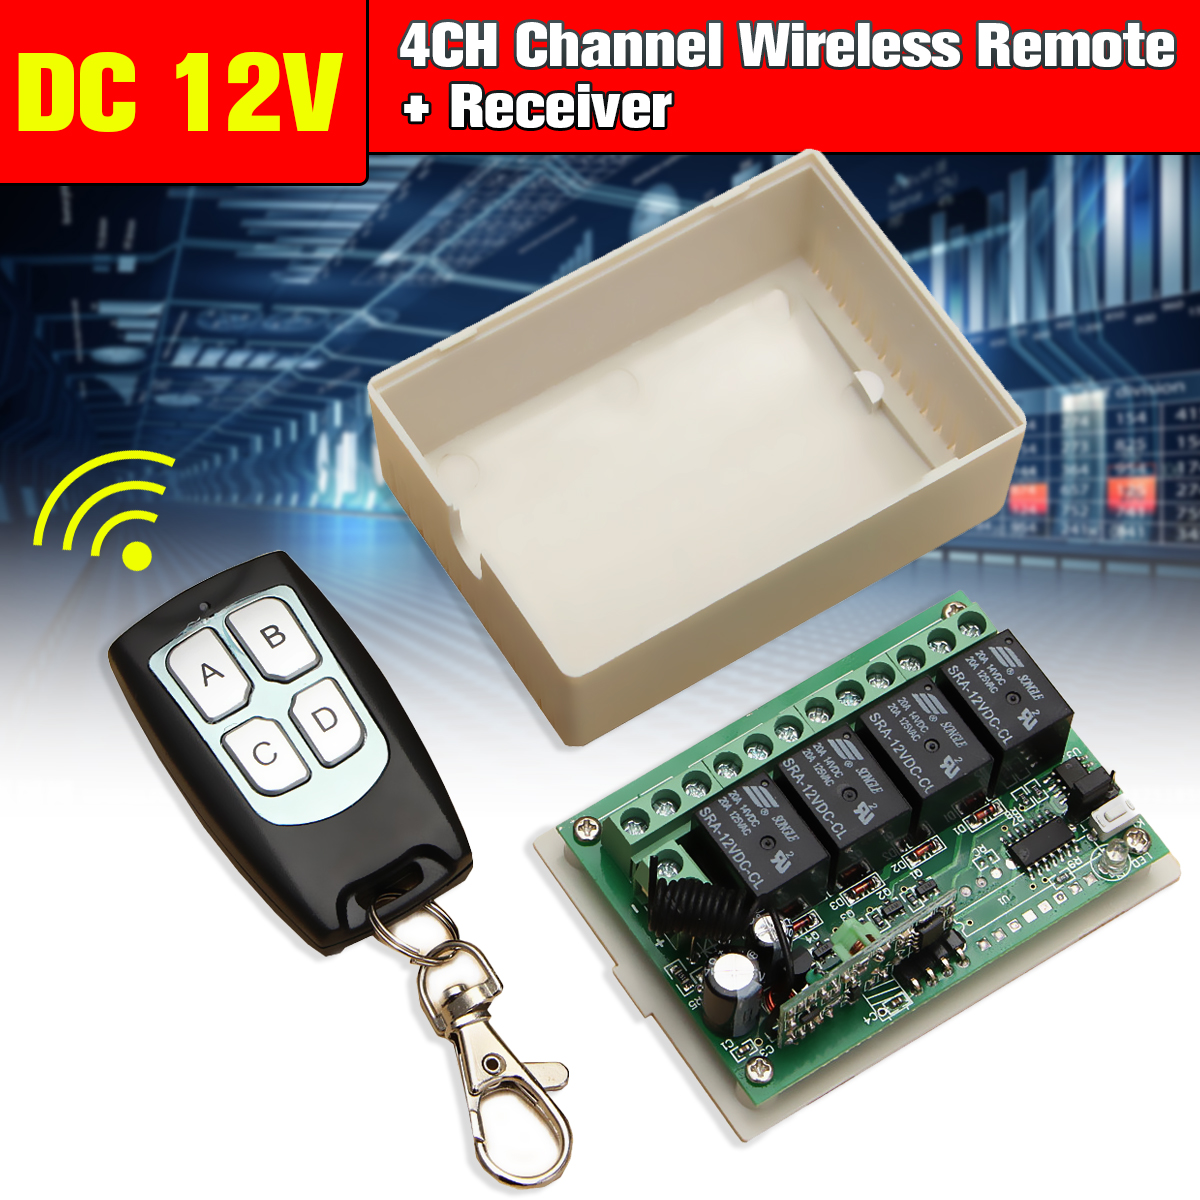 DC 12V 4CH 433MHz Small Channel Wireless Remote Control Controller Radio Switch 200m Transmitter + Receiver Interlock Self-lock стоимость